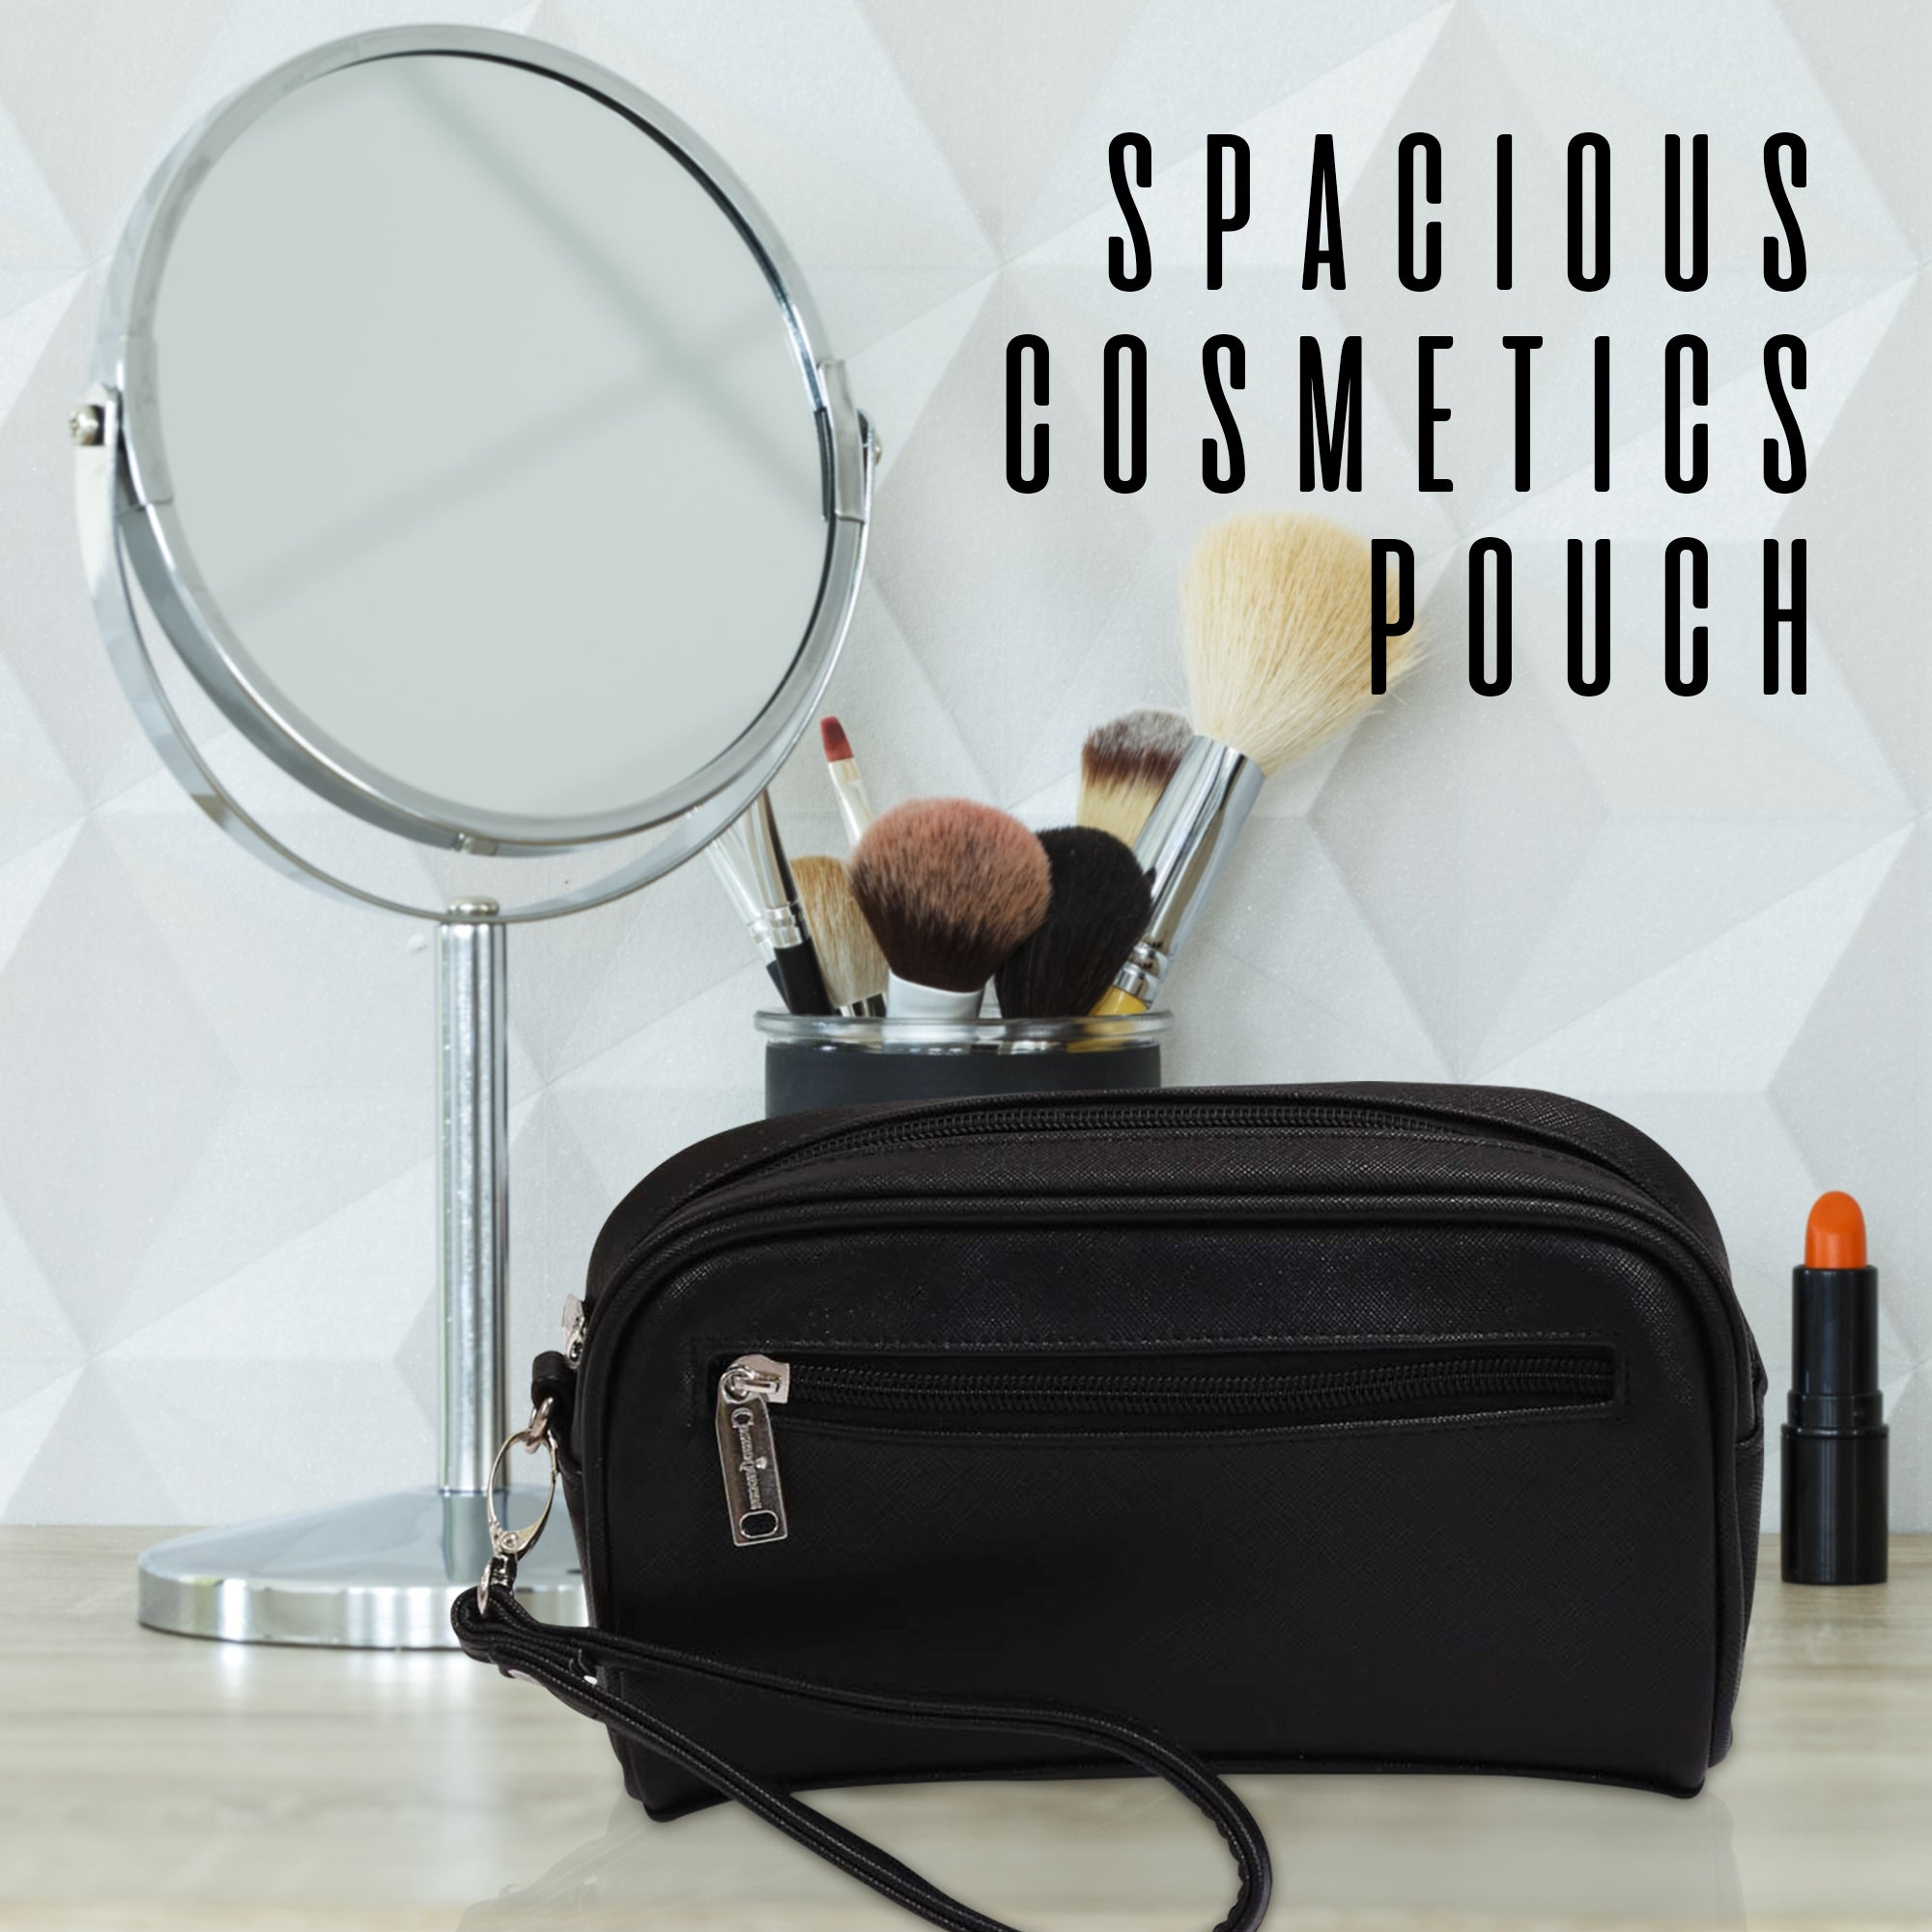 Cosmetics Bag Margarita Design - primewareinc